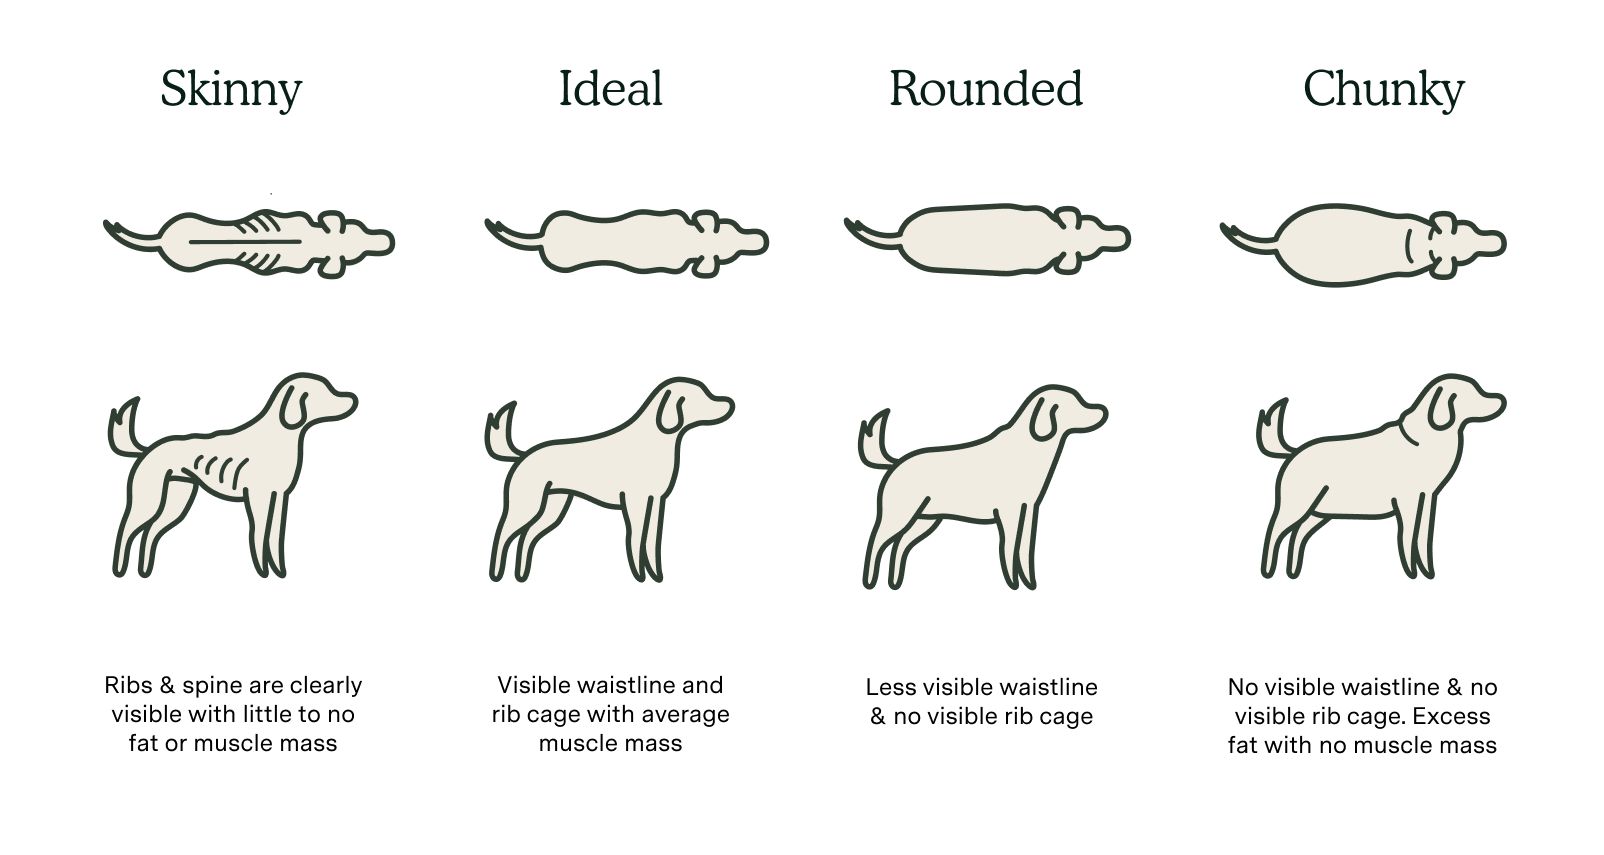 Body condition score chart for dogs. Skinny body type, ideal body type, rounded body type and chunky body types are shown in this graphic